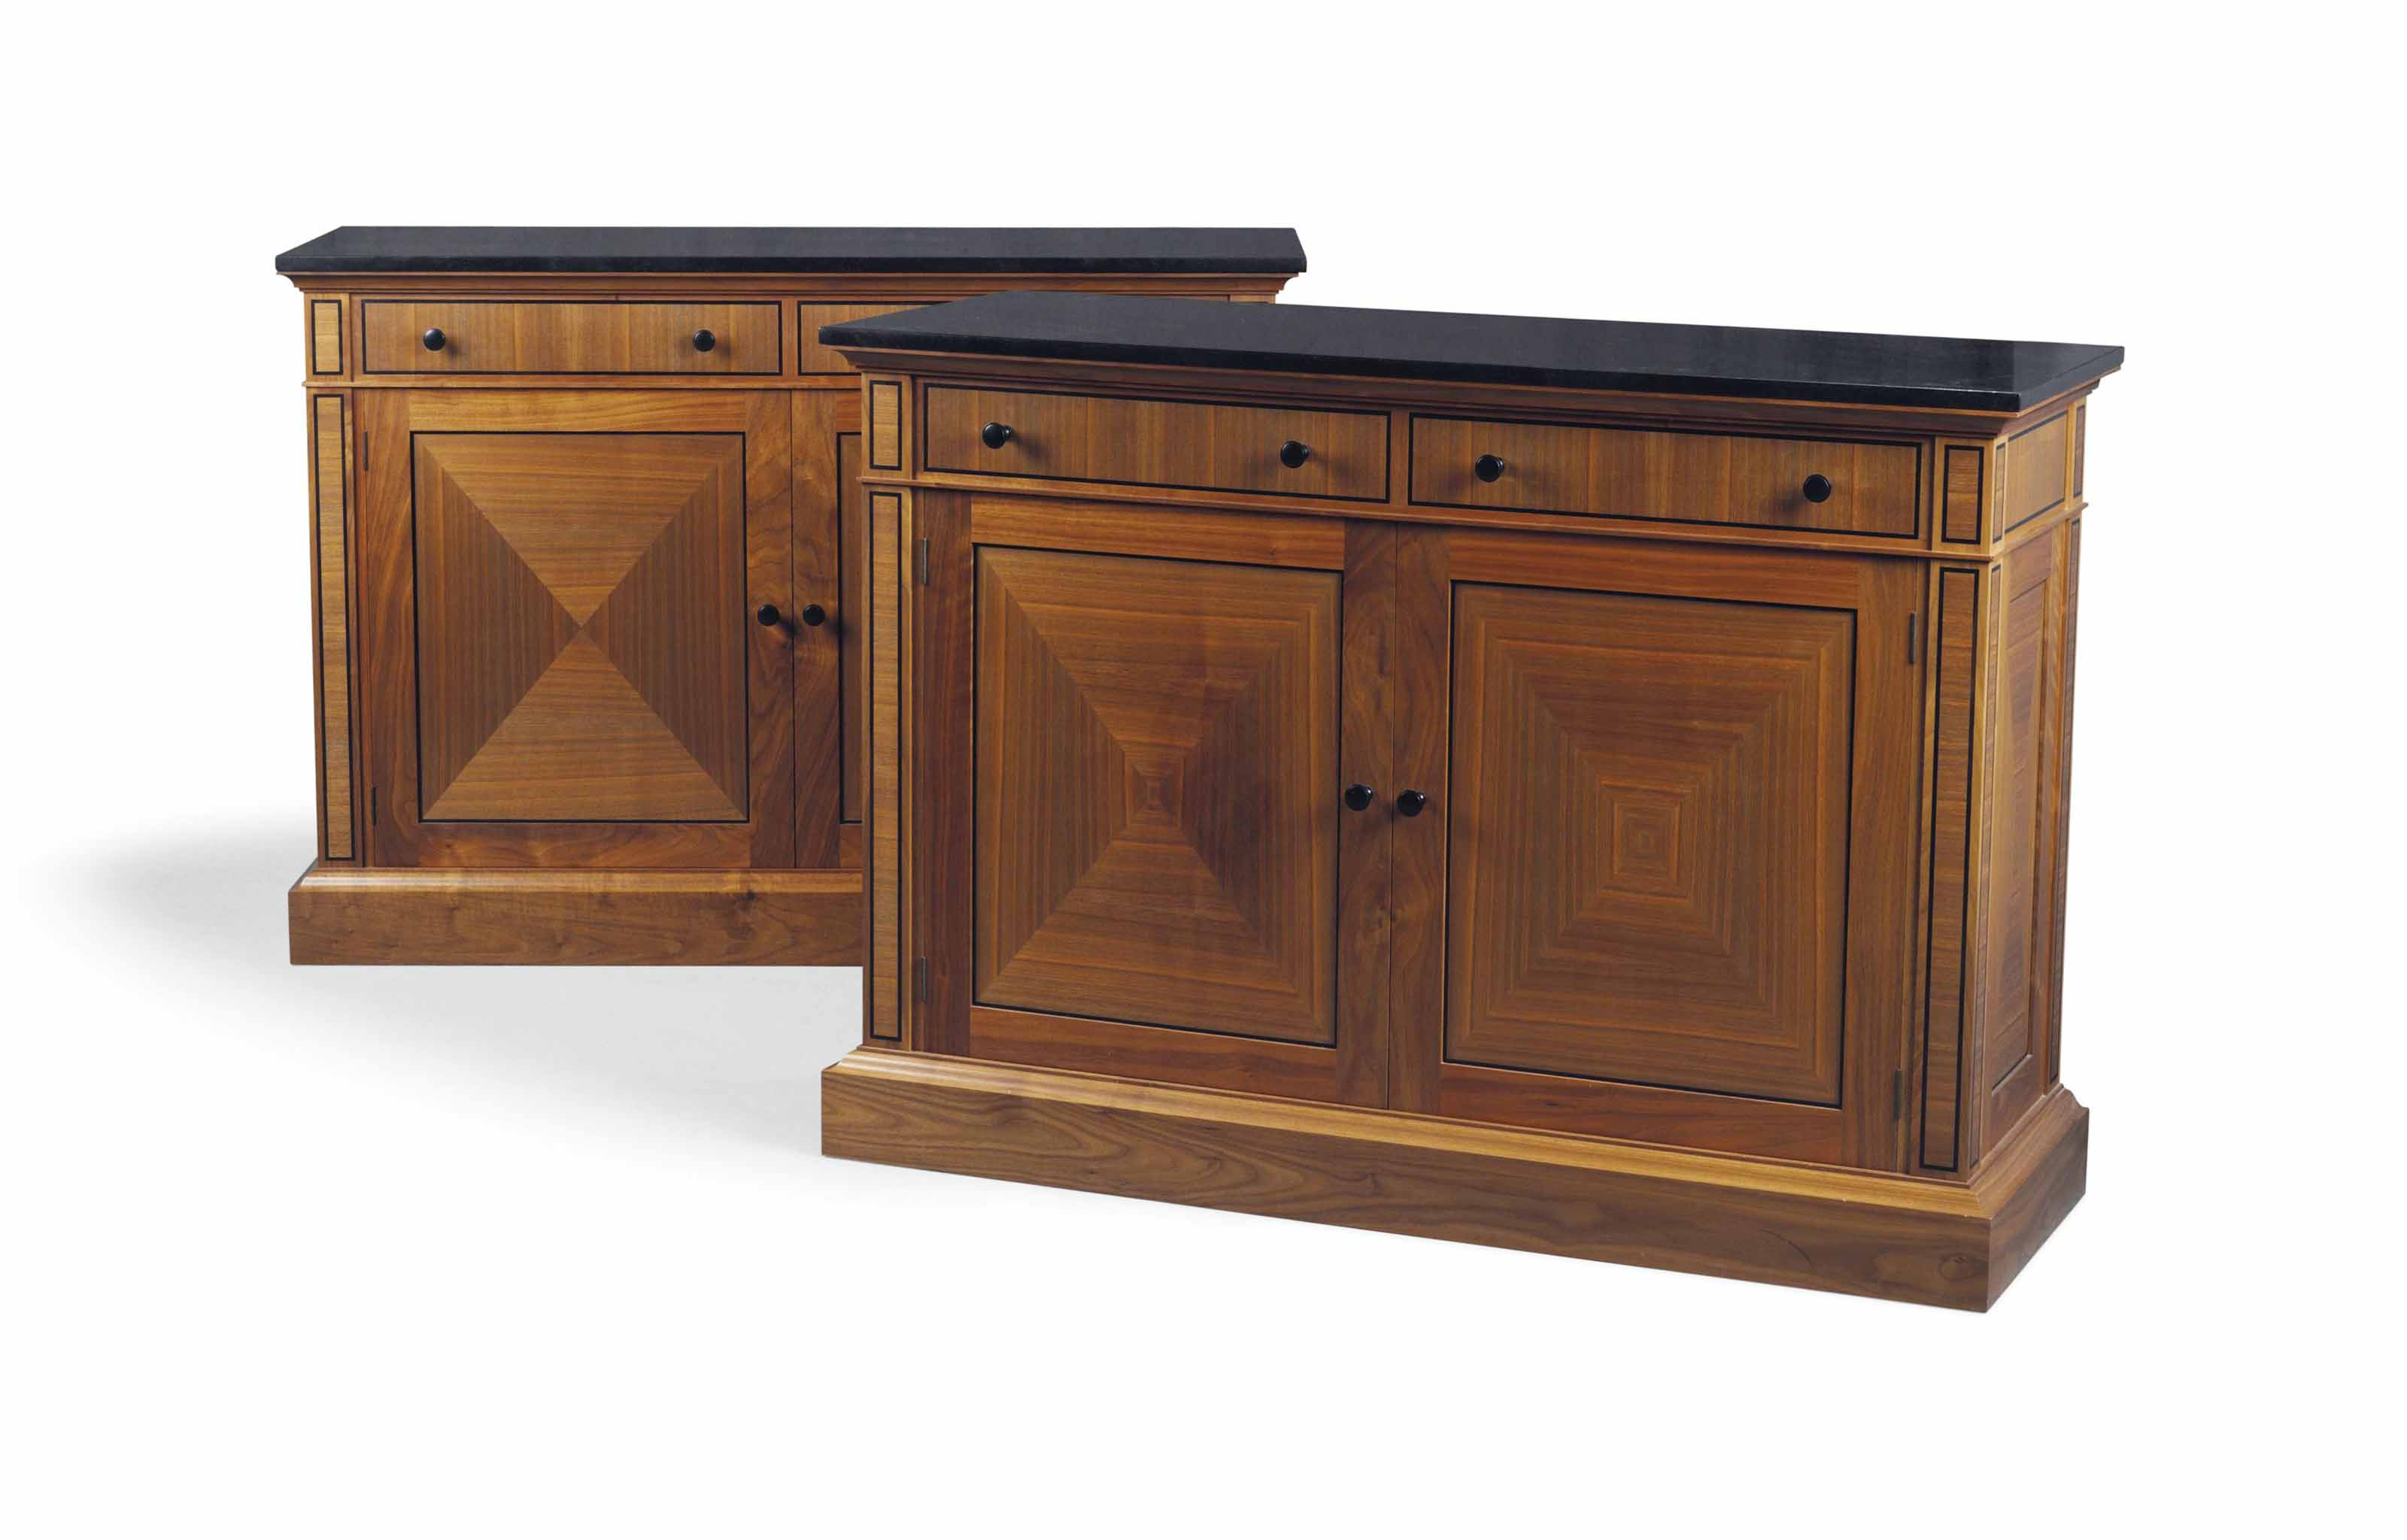 A PAIR OF WALNUT AND EBONY STRUNG SIDE CABINETS